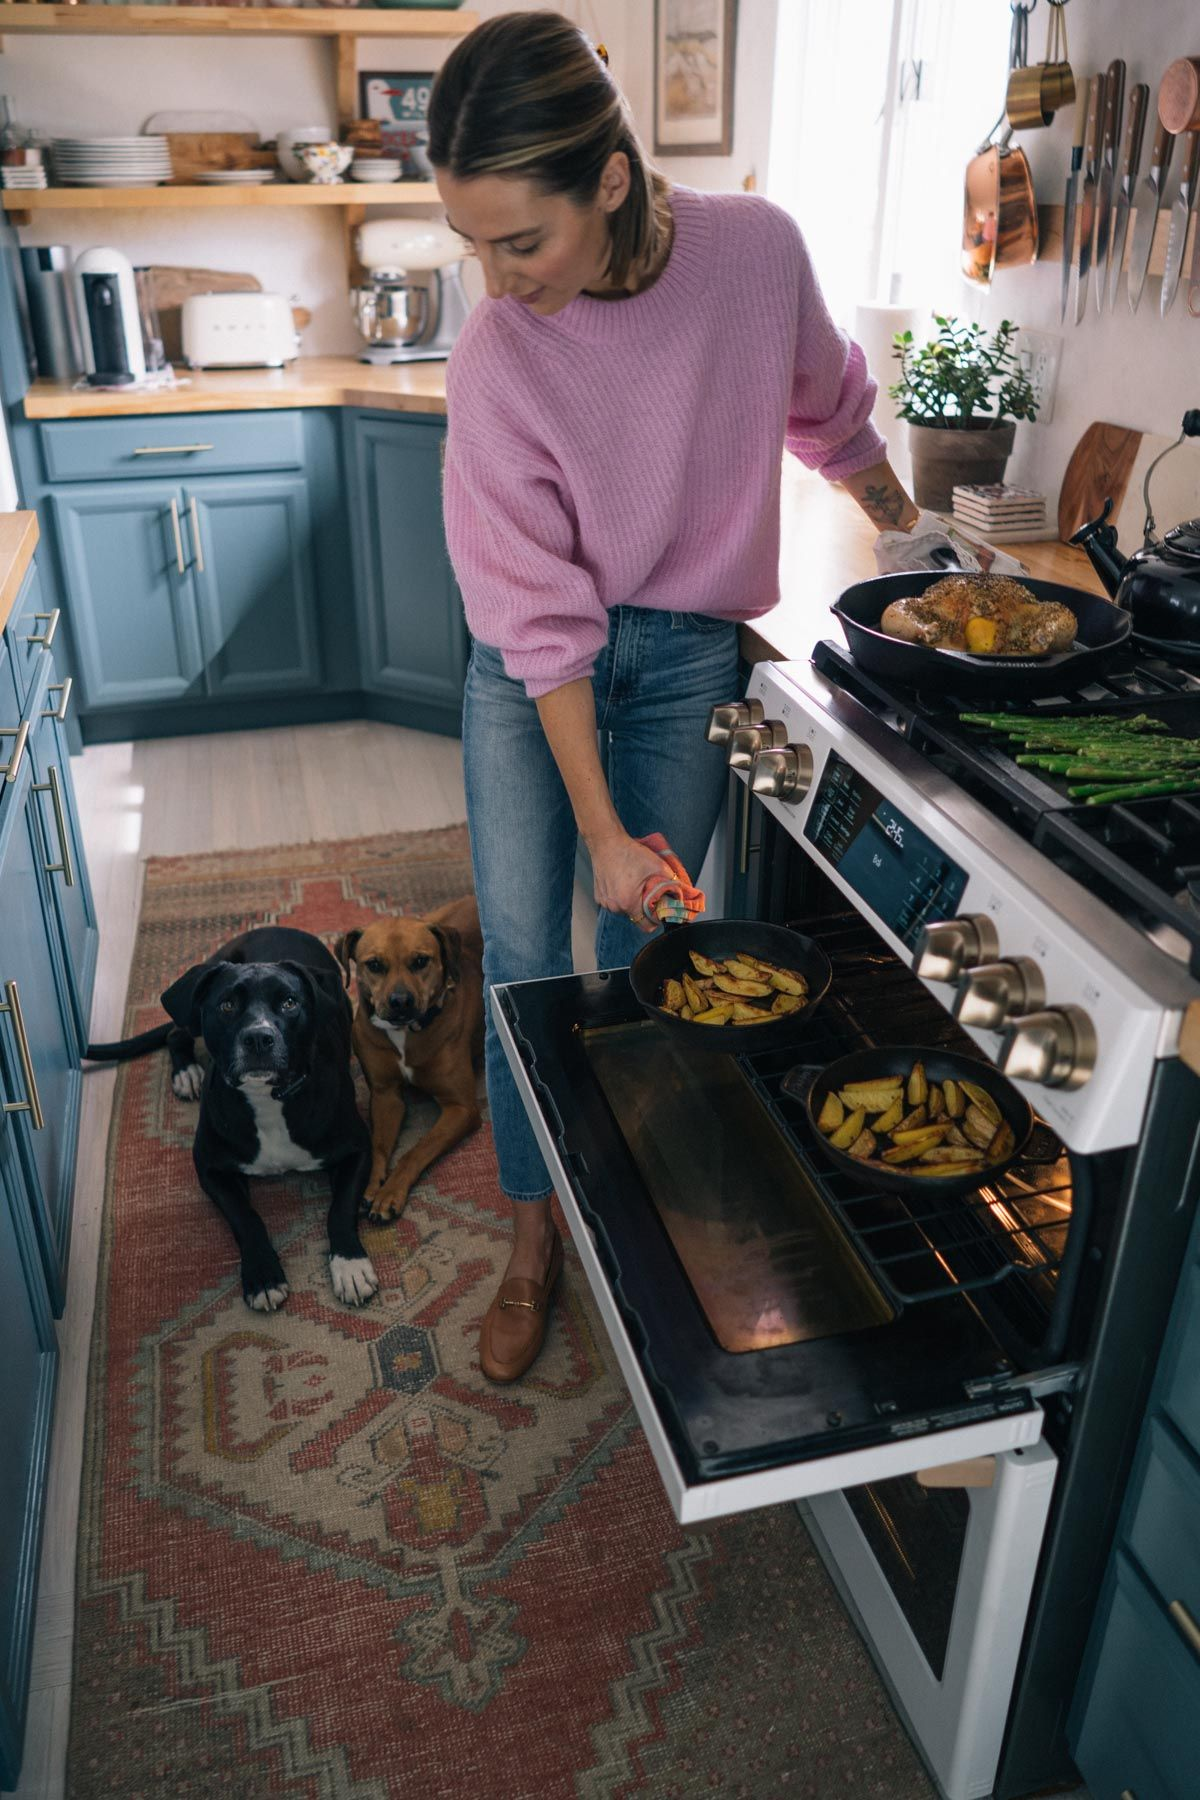 Jess ann kirby shares how to cook the perfect roast